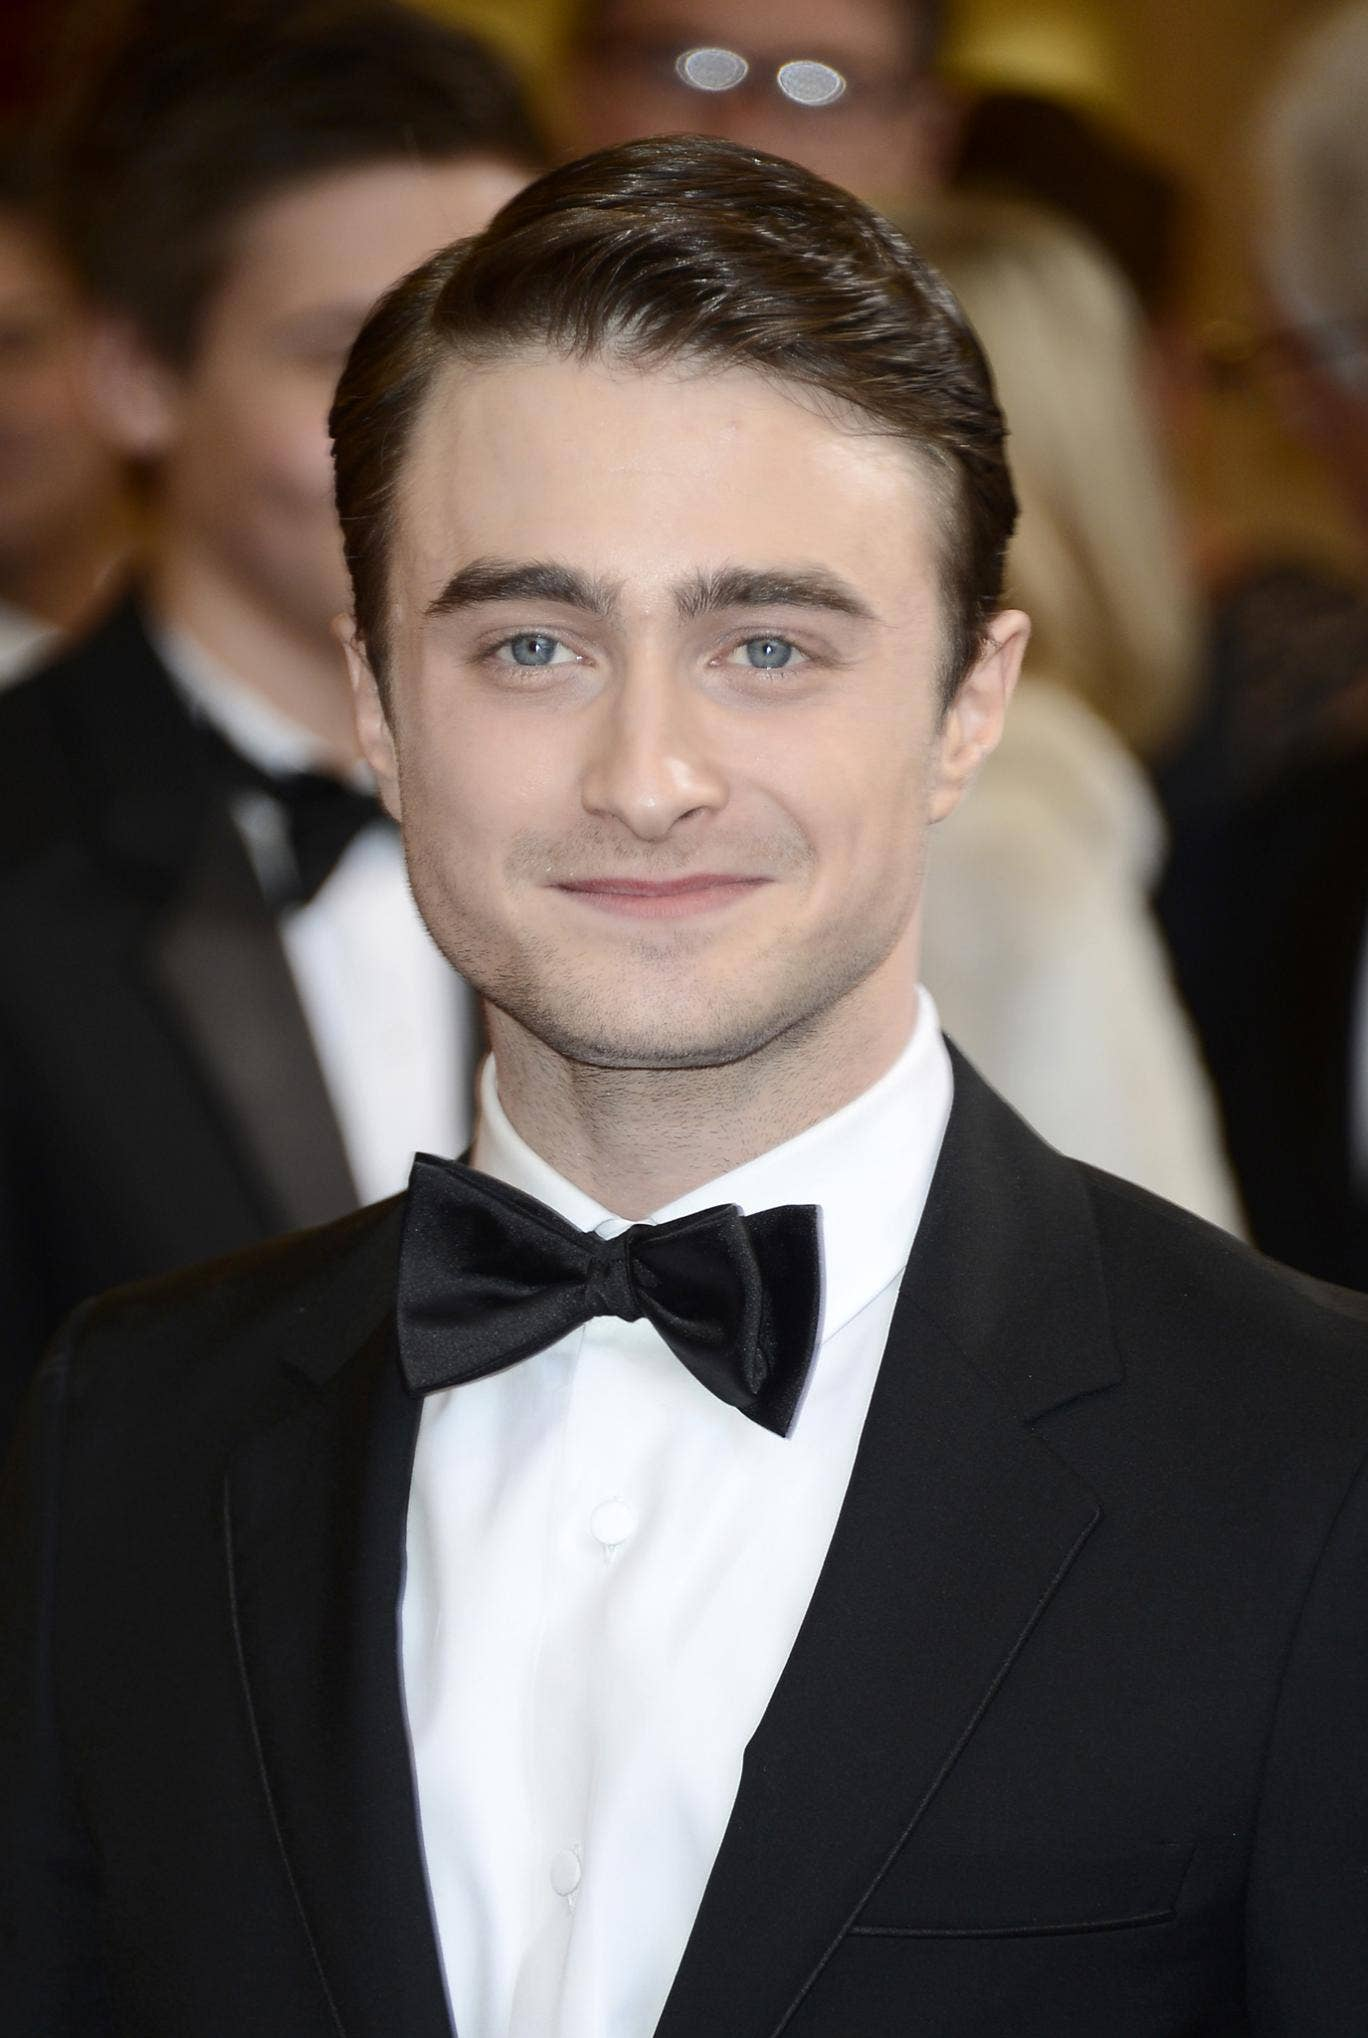 Daniel Radcliffe is close to being cast as Igor in a take on Mary Shelley's Frankenstein